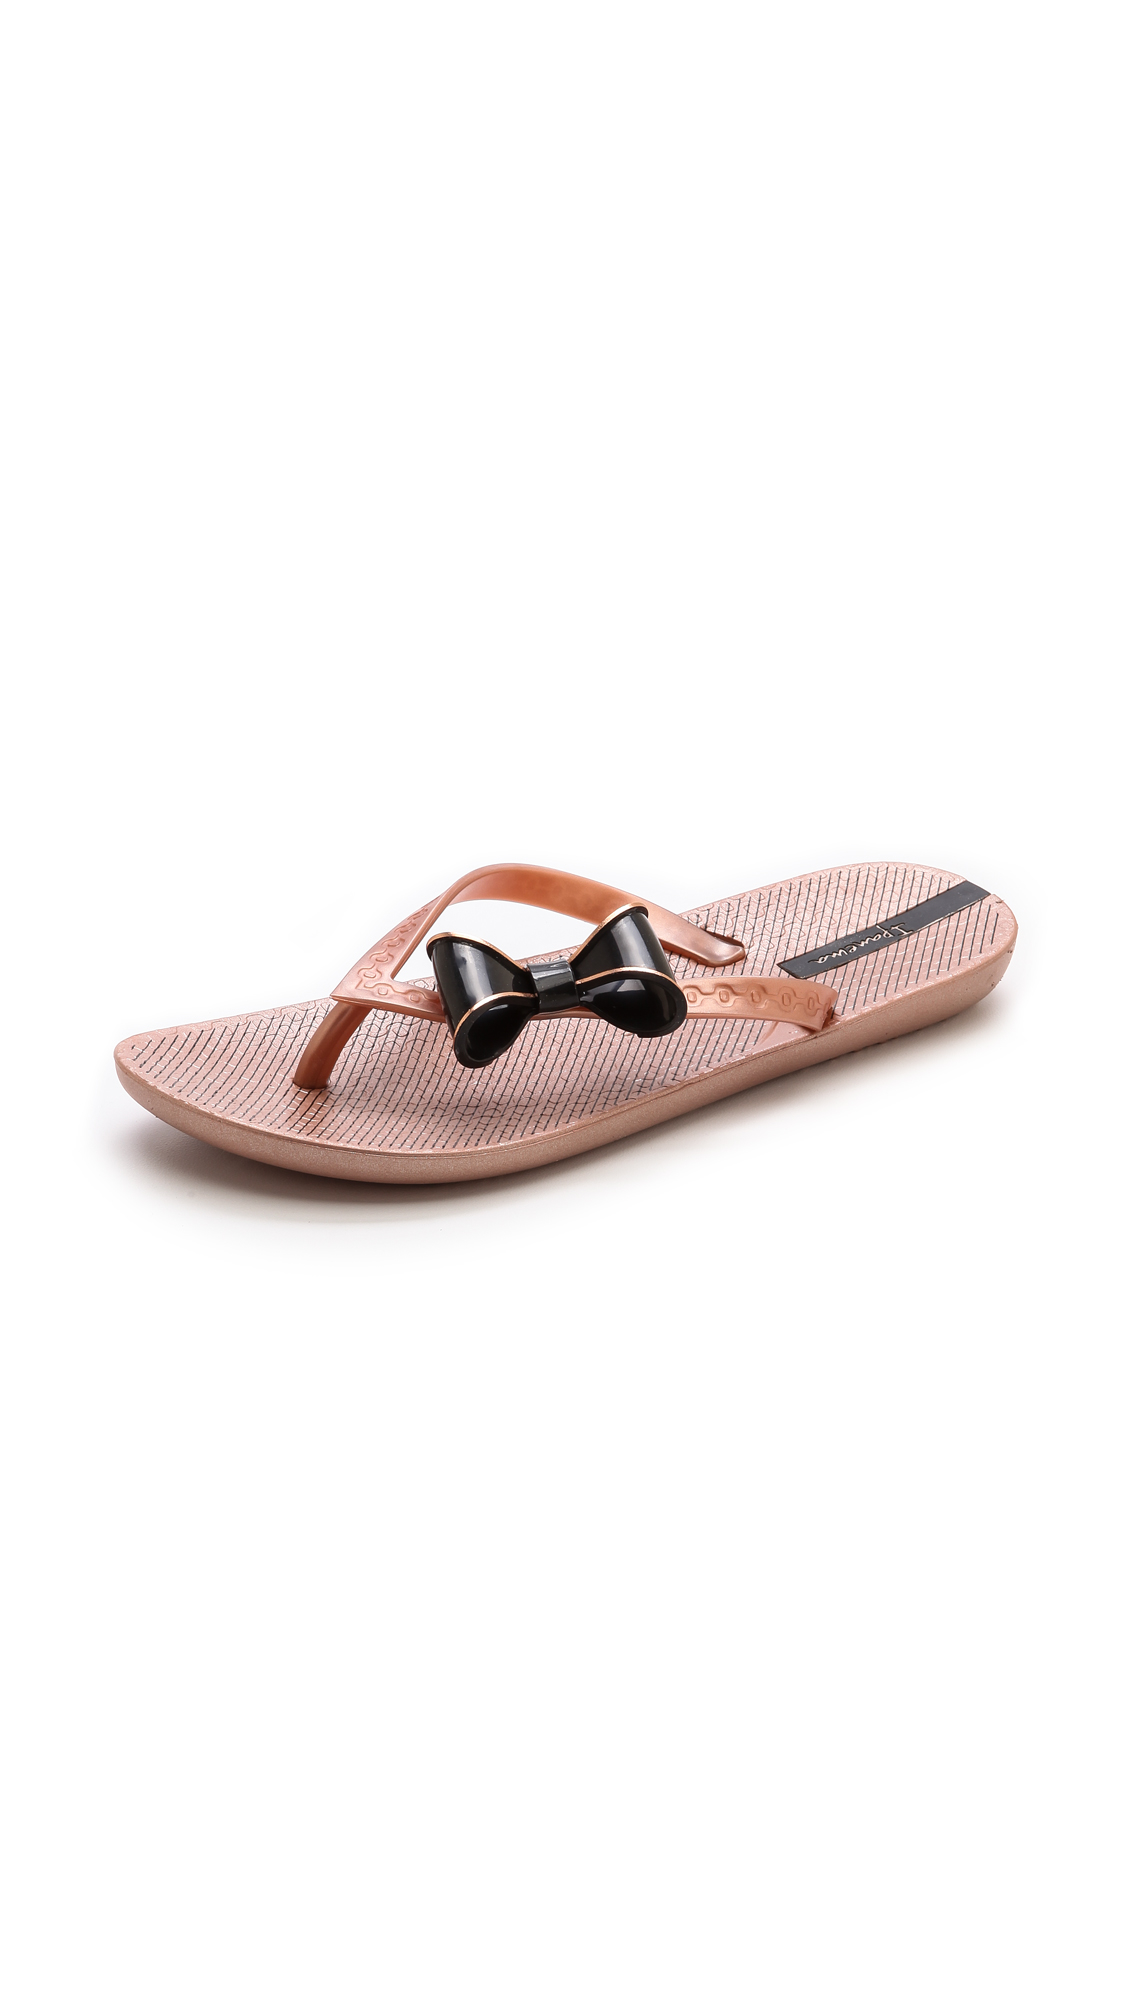 4fcc496ce2f6e Lyst - Ipanema Neo Clara Bow Flip Flops - Rose Gold Black in Metallic